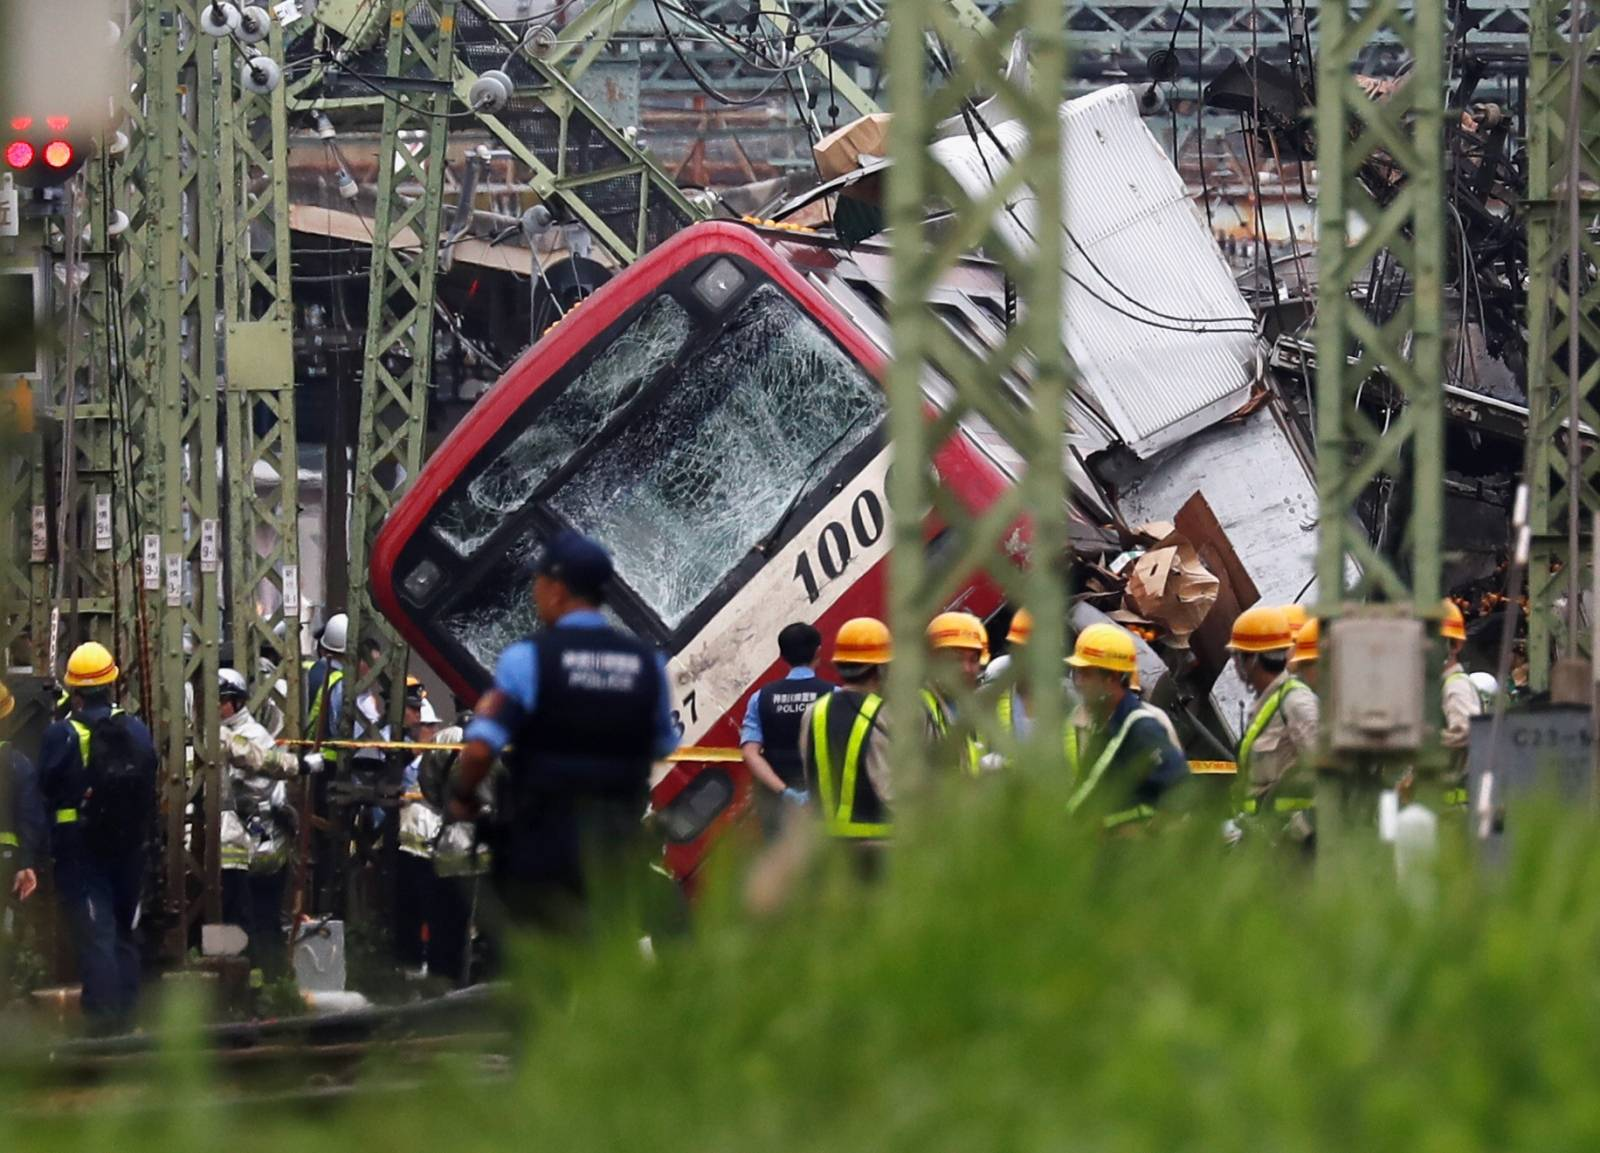 Rescue personnel and police are seen on the tracks next to a train after it derailed during a collision with a truck in Yokohama